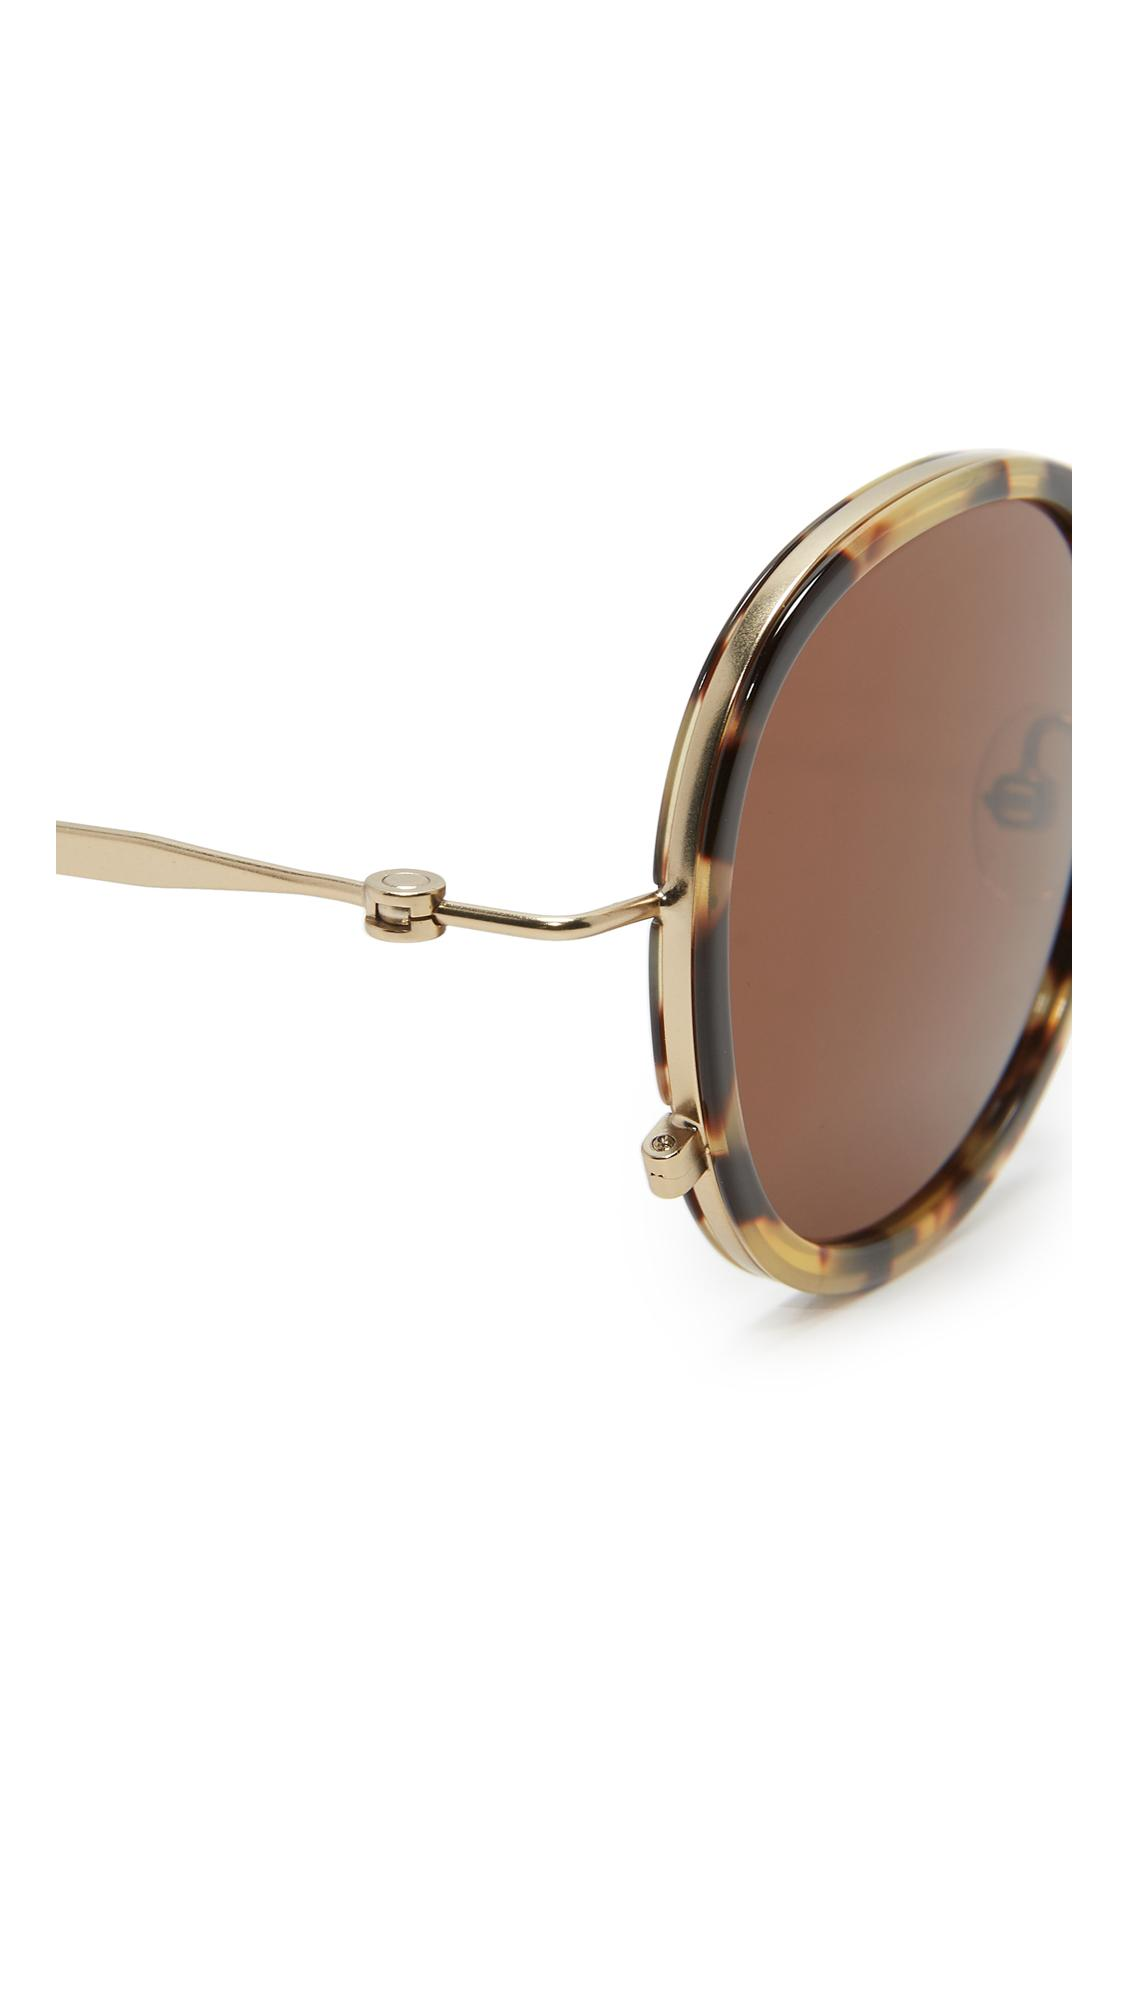 Tomas Maier Leather Eye Rim Round Sunglasses in Brown